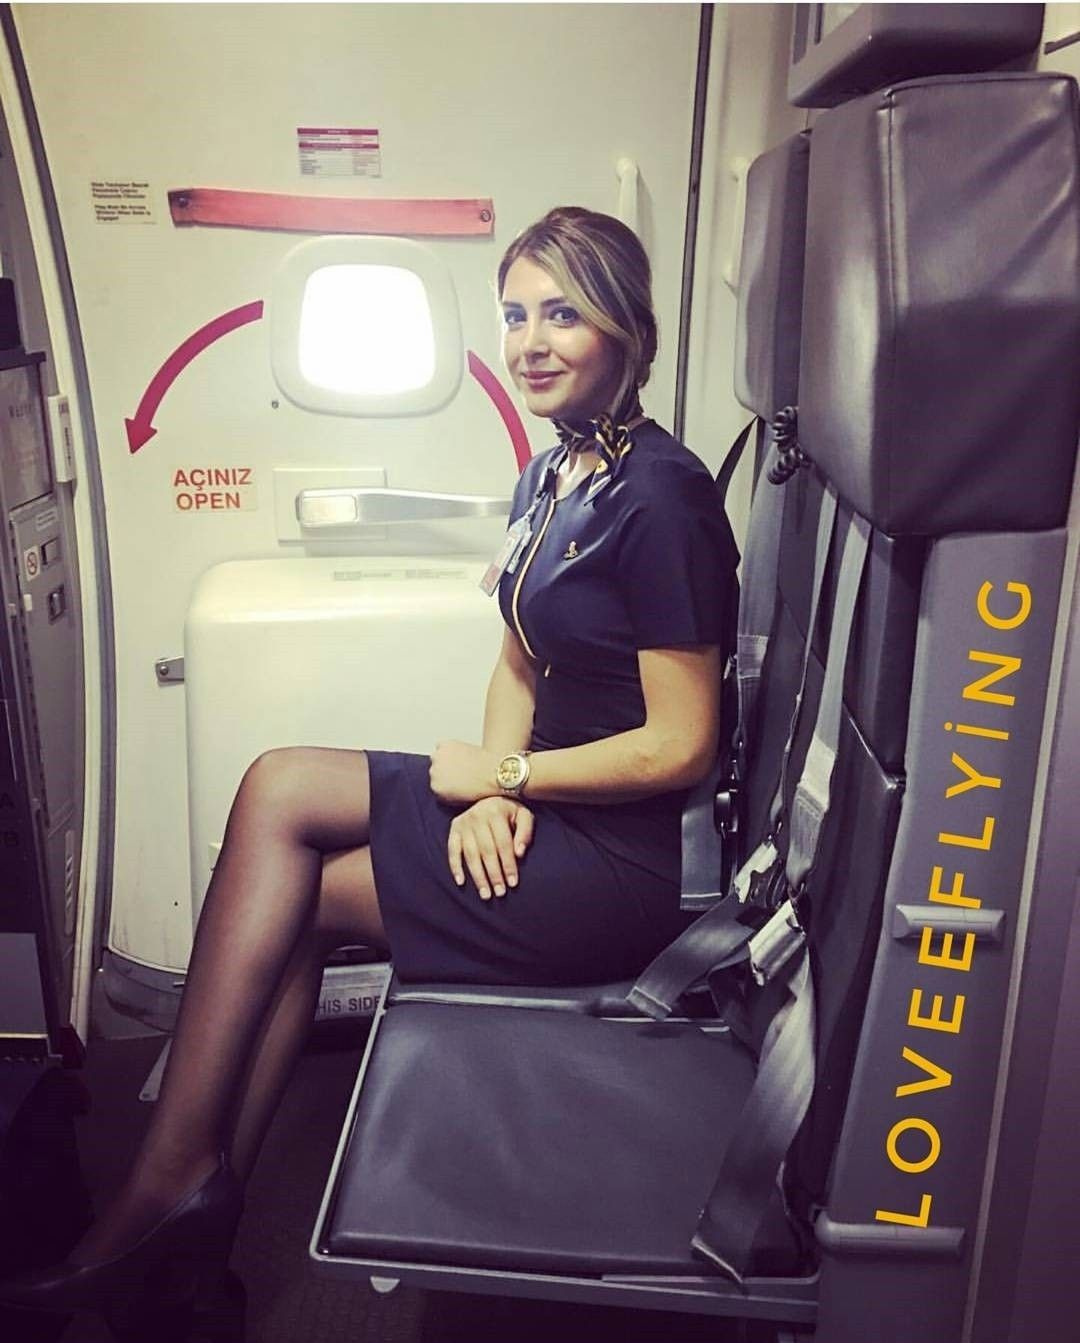 Girl too sexy for airplane